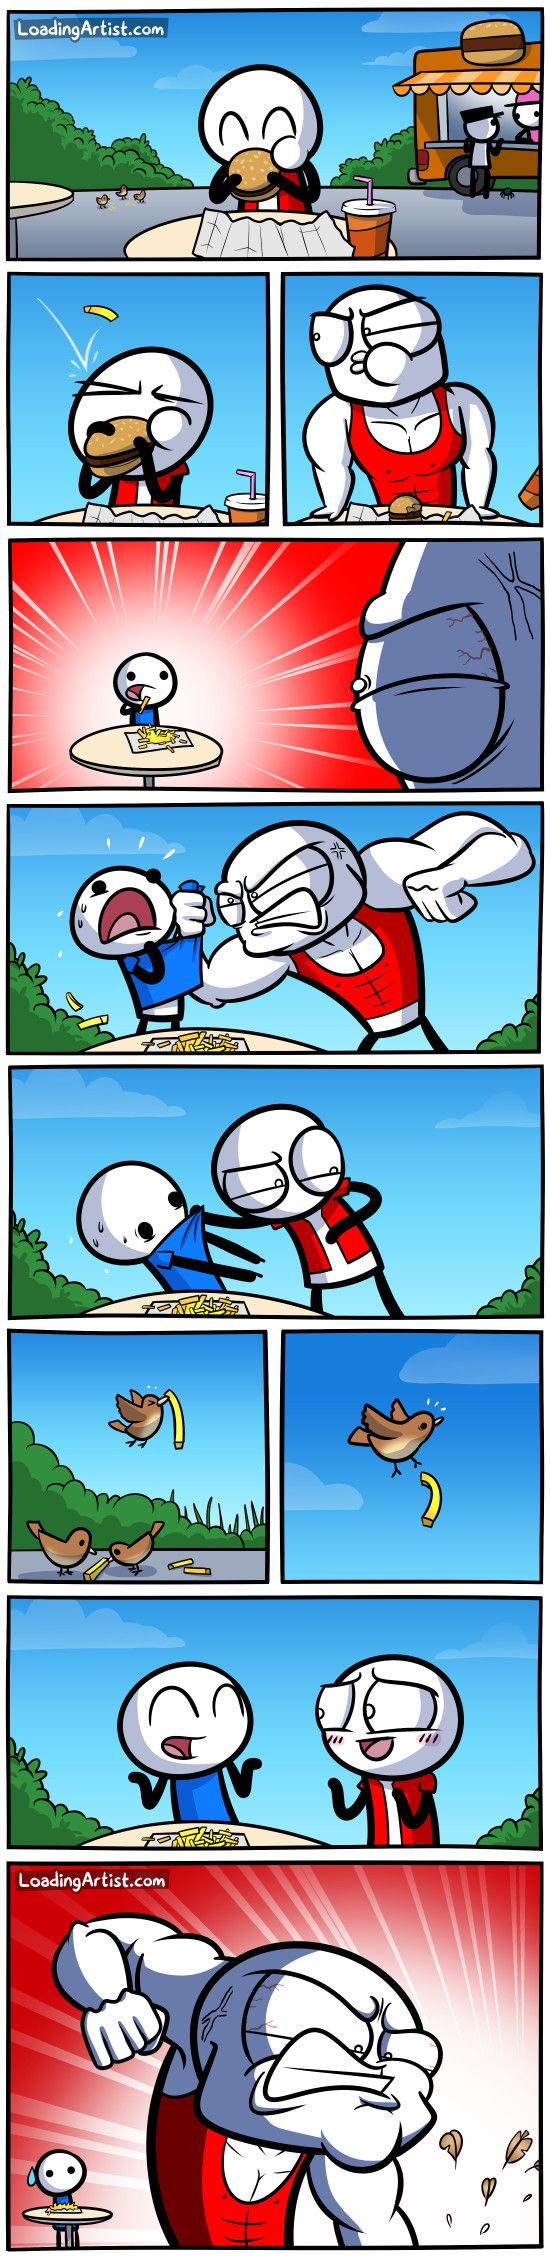 A guy eating a burger gets attacked by a chip... comics without words are hard to describe. Tap to view!